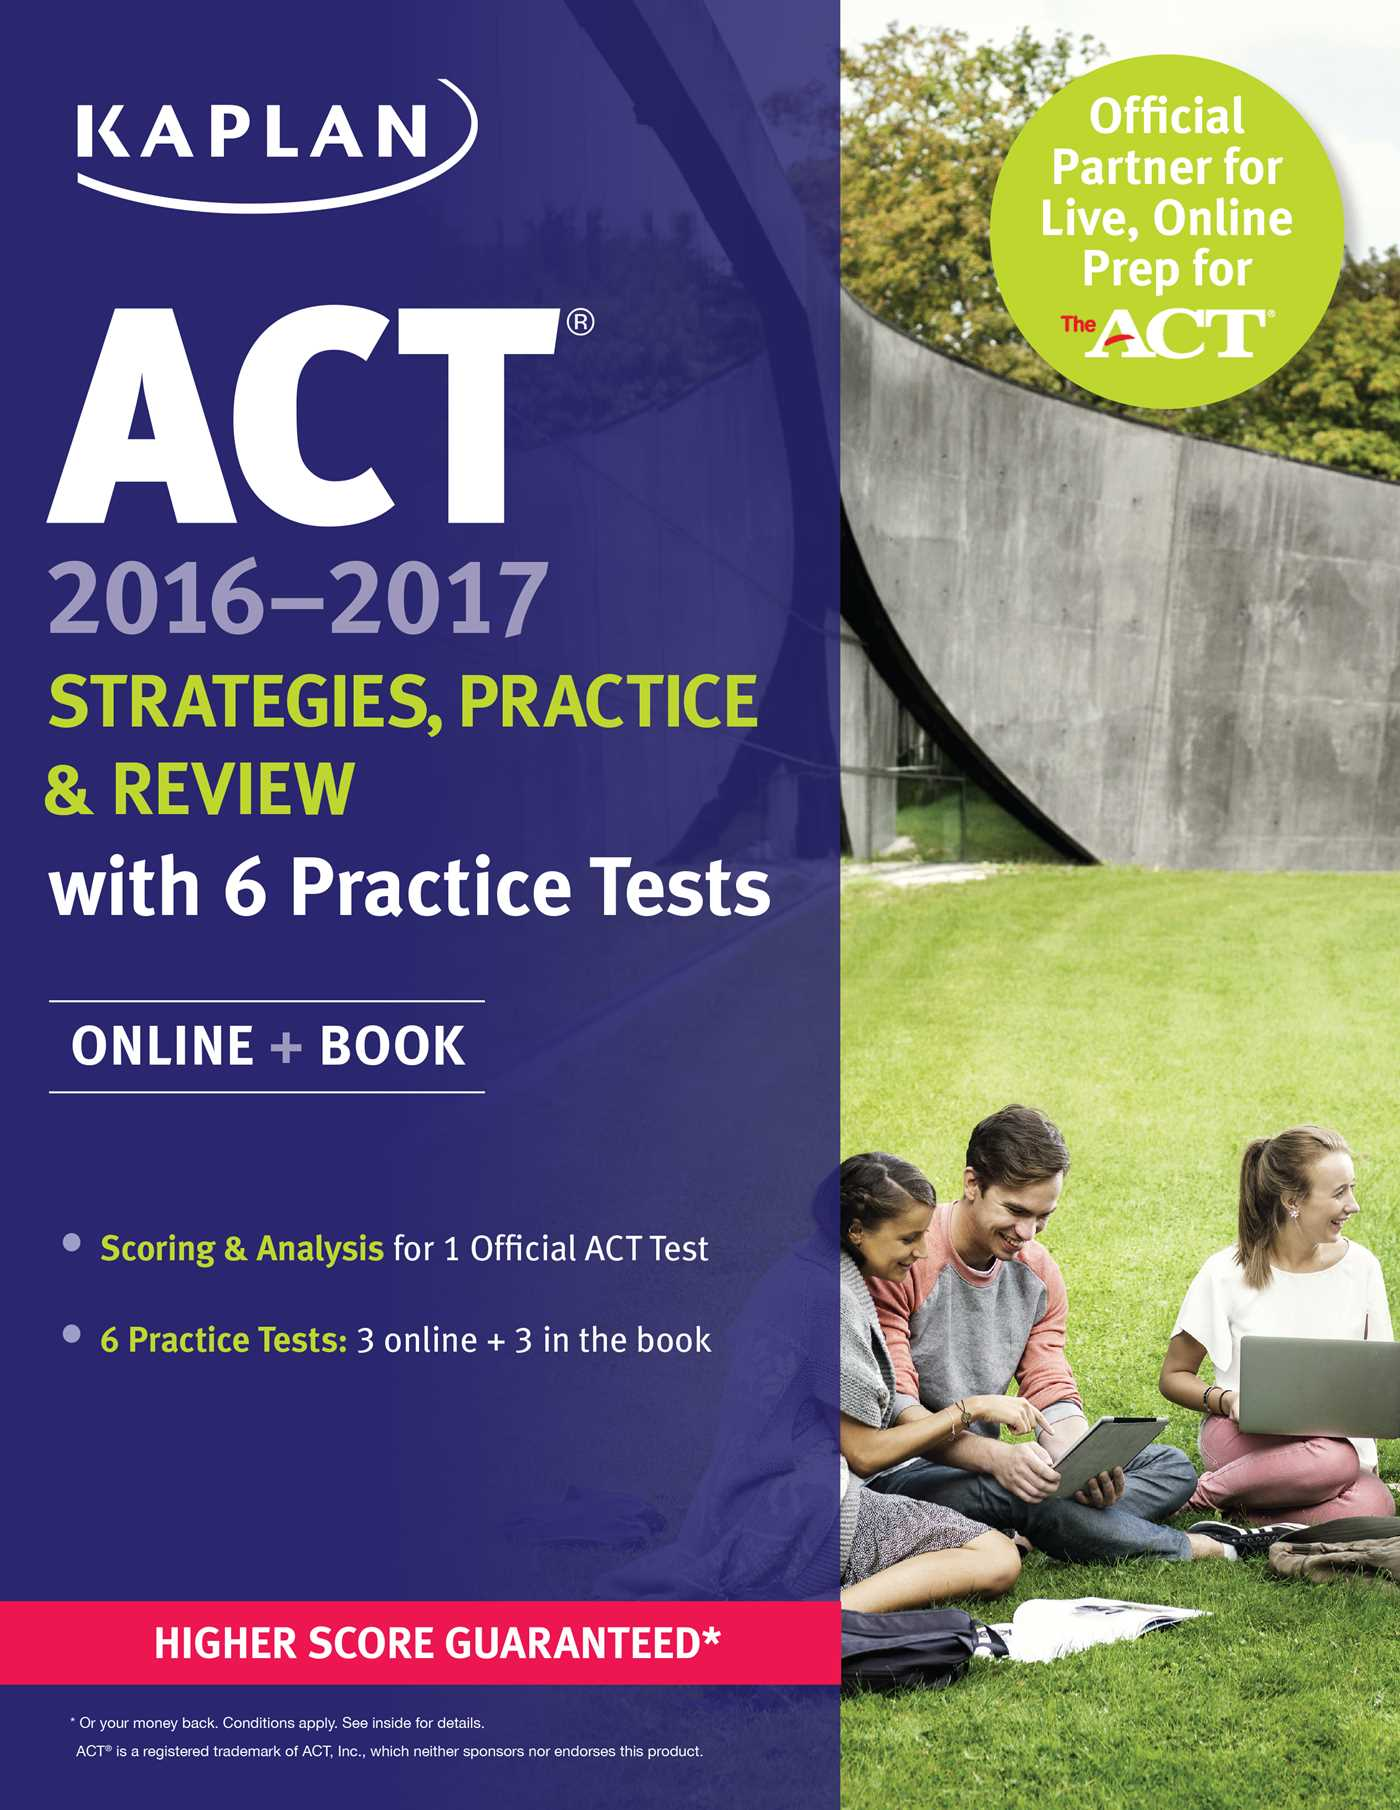 ACT 2016-2017 Strategies, Practice, and Review with 6 Practice Tests :  Online + Book - Walmart.com